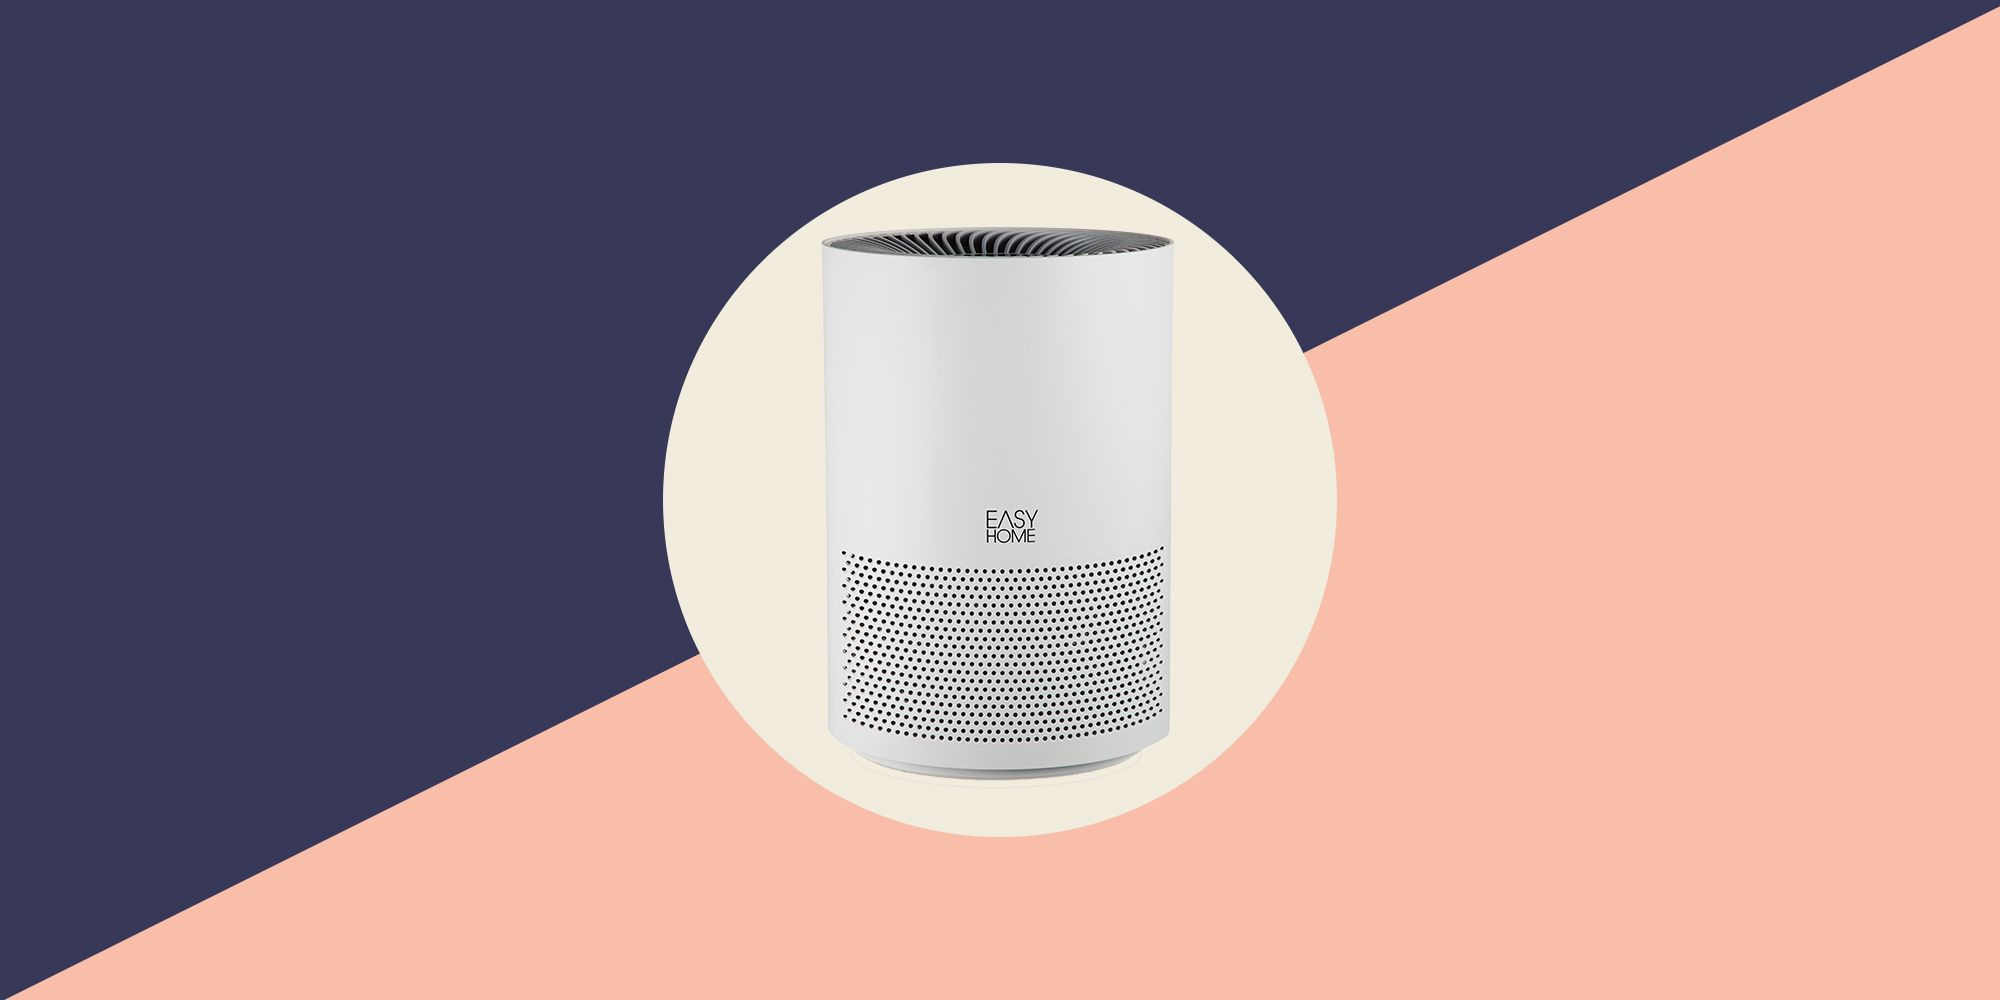 Aldi is selling an air purifier for £60 to detoxify the air in your home